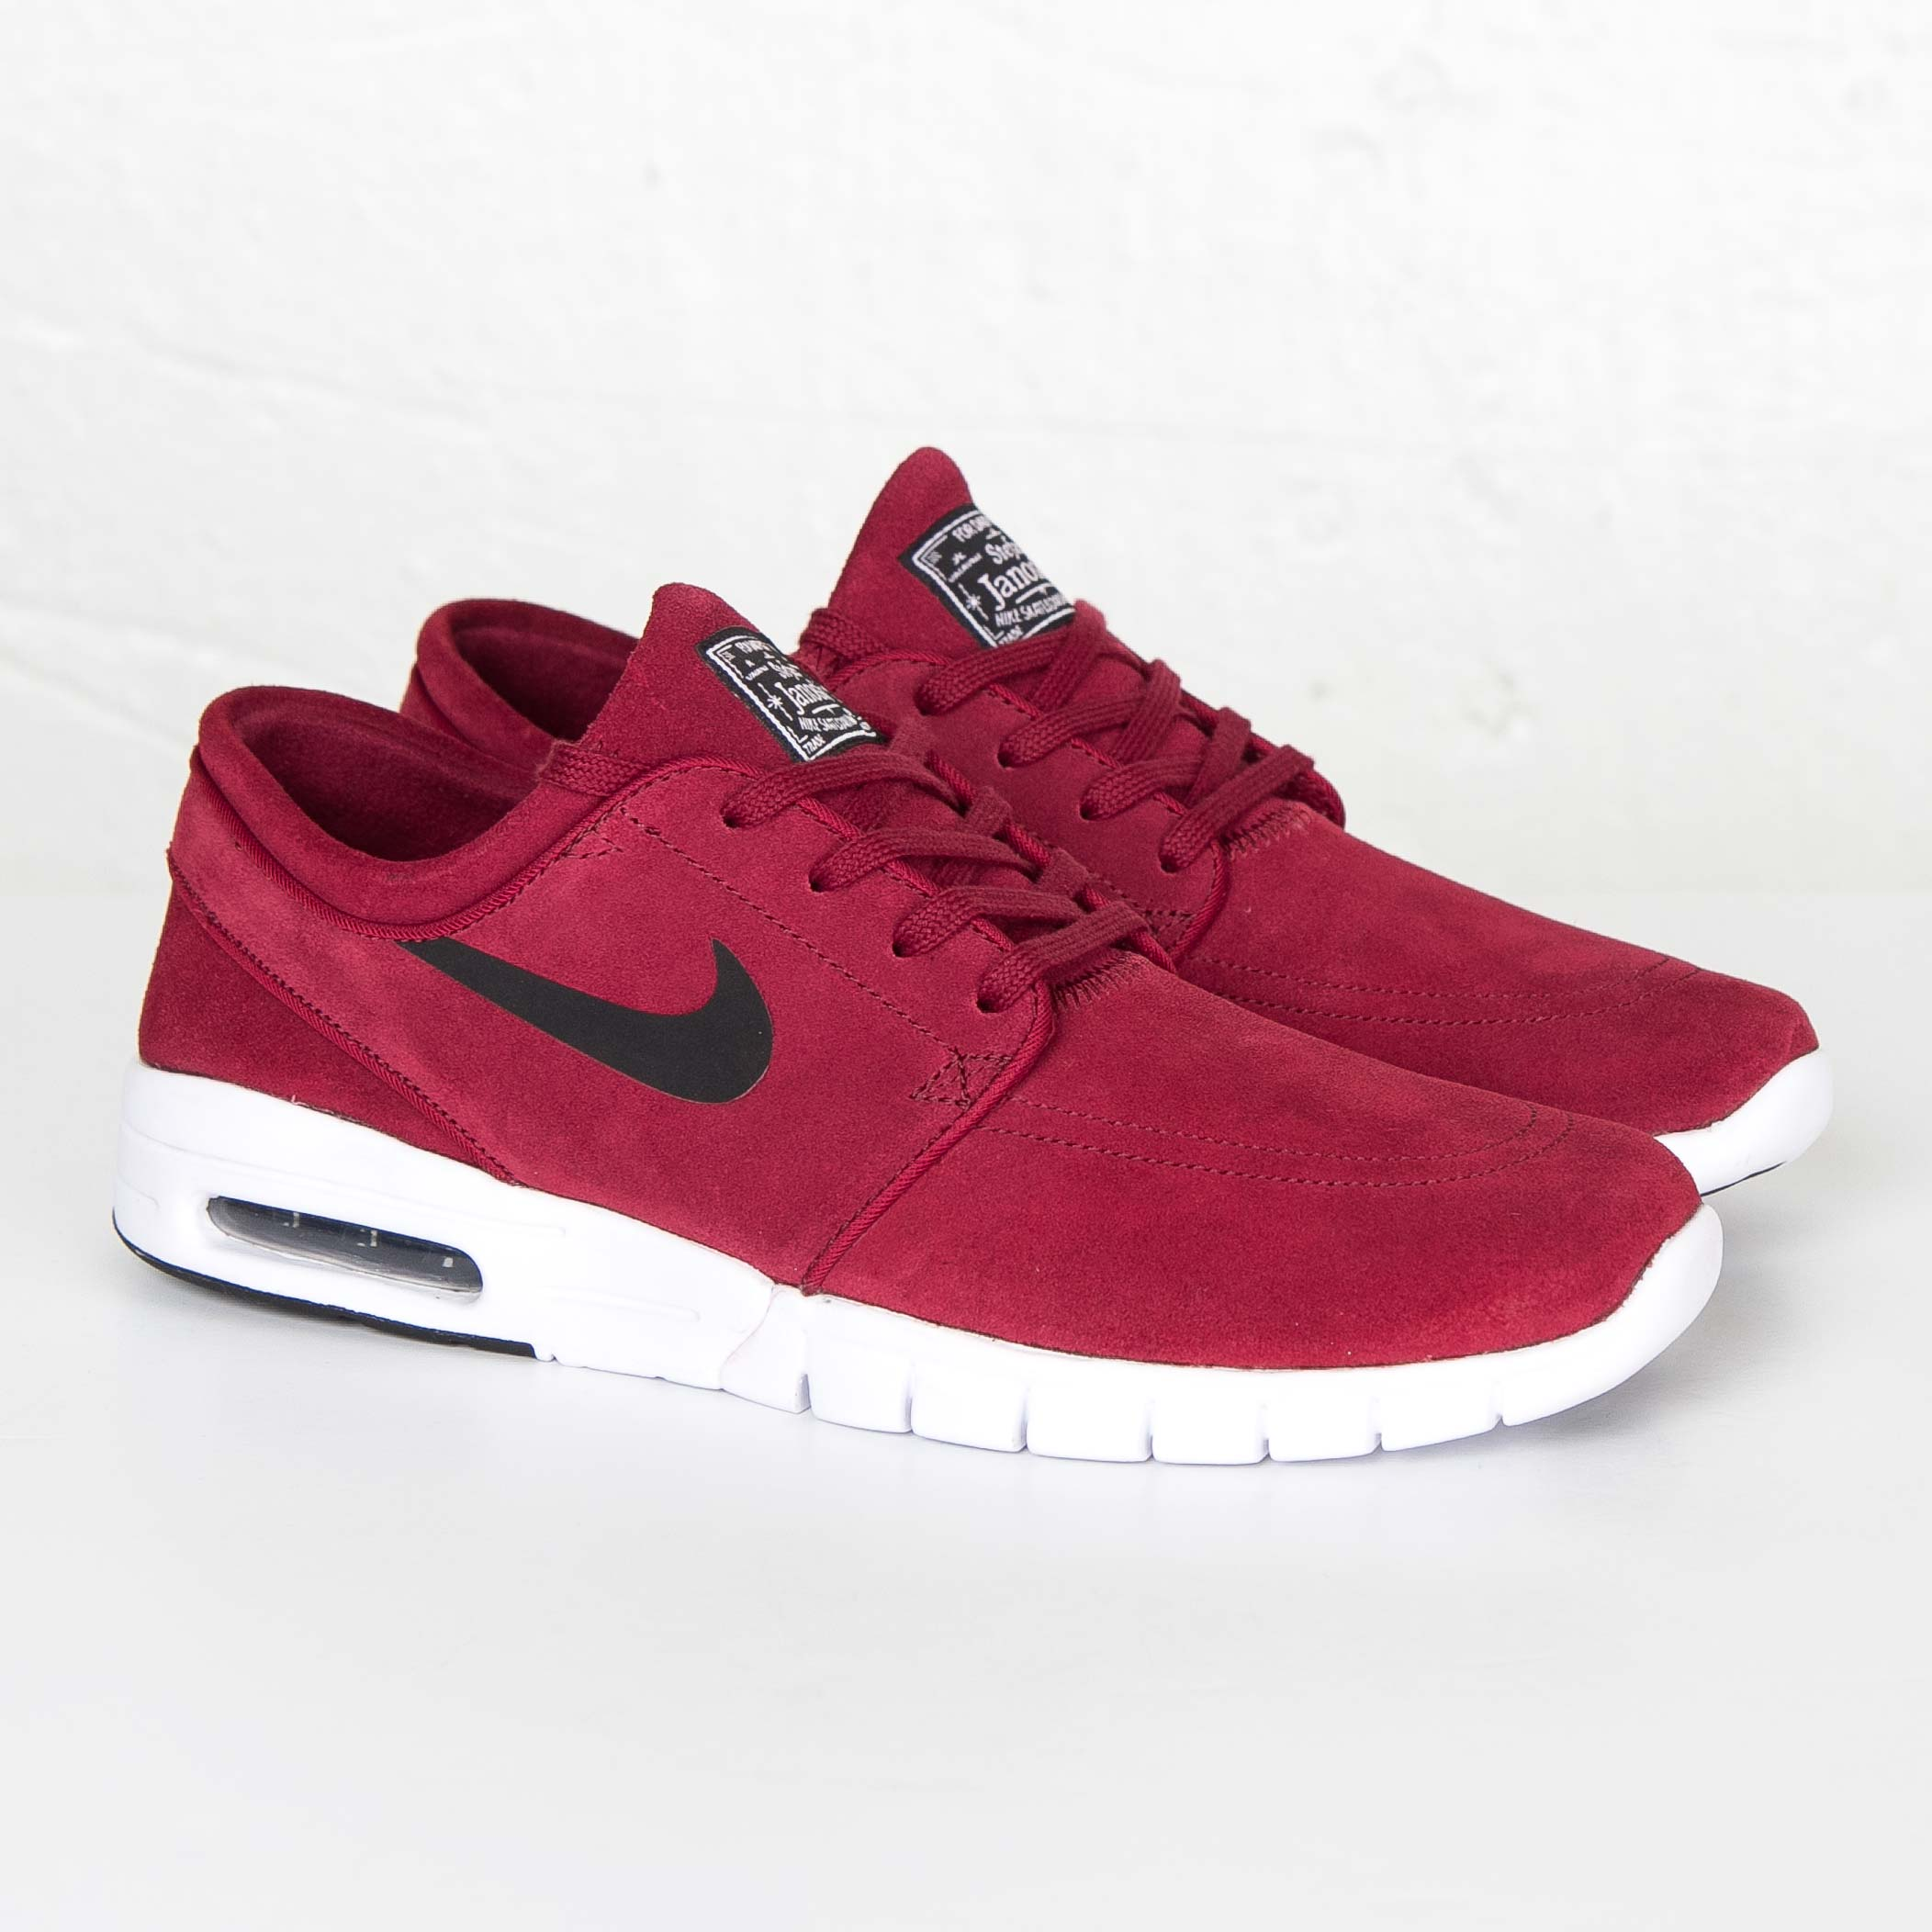 new arrive classic shoes picked up Nike Stefan Janoski Max Suede - 685299-601 - Sneakersnstuff ...